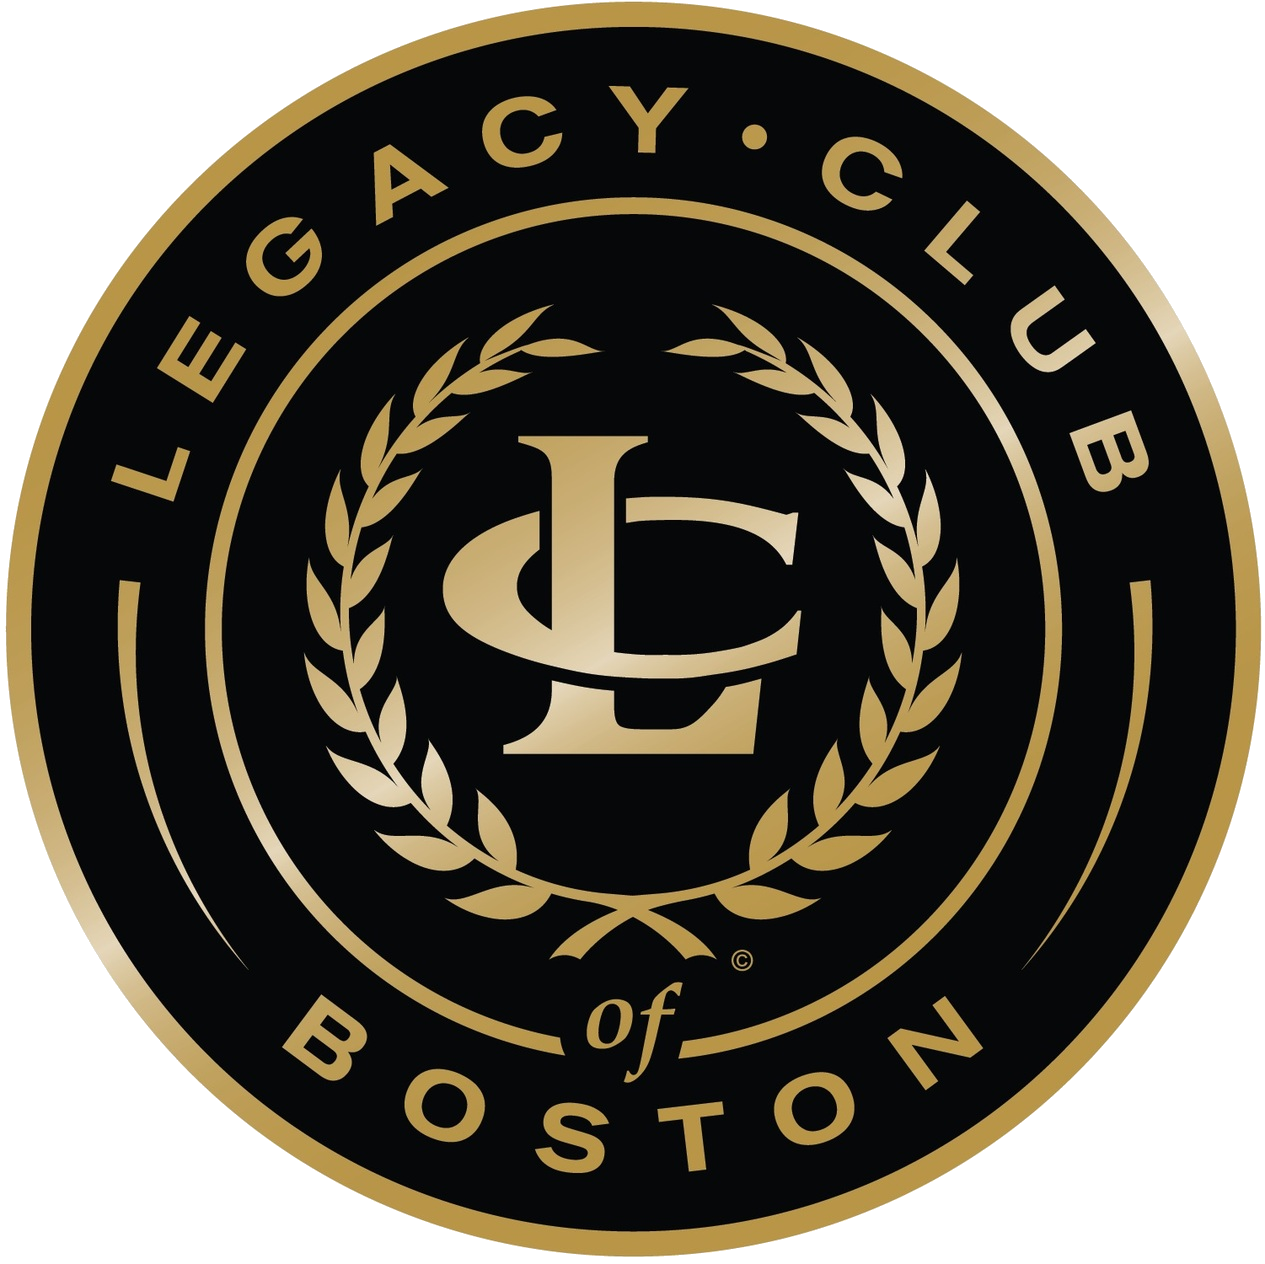 Legacy Club of Boston